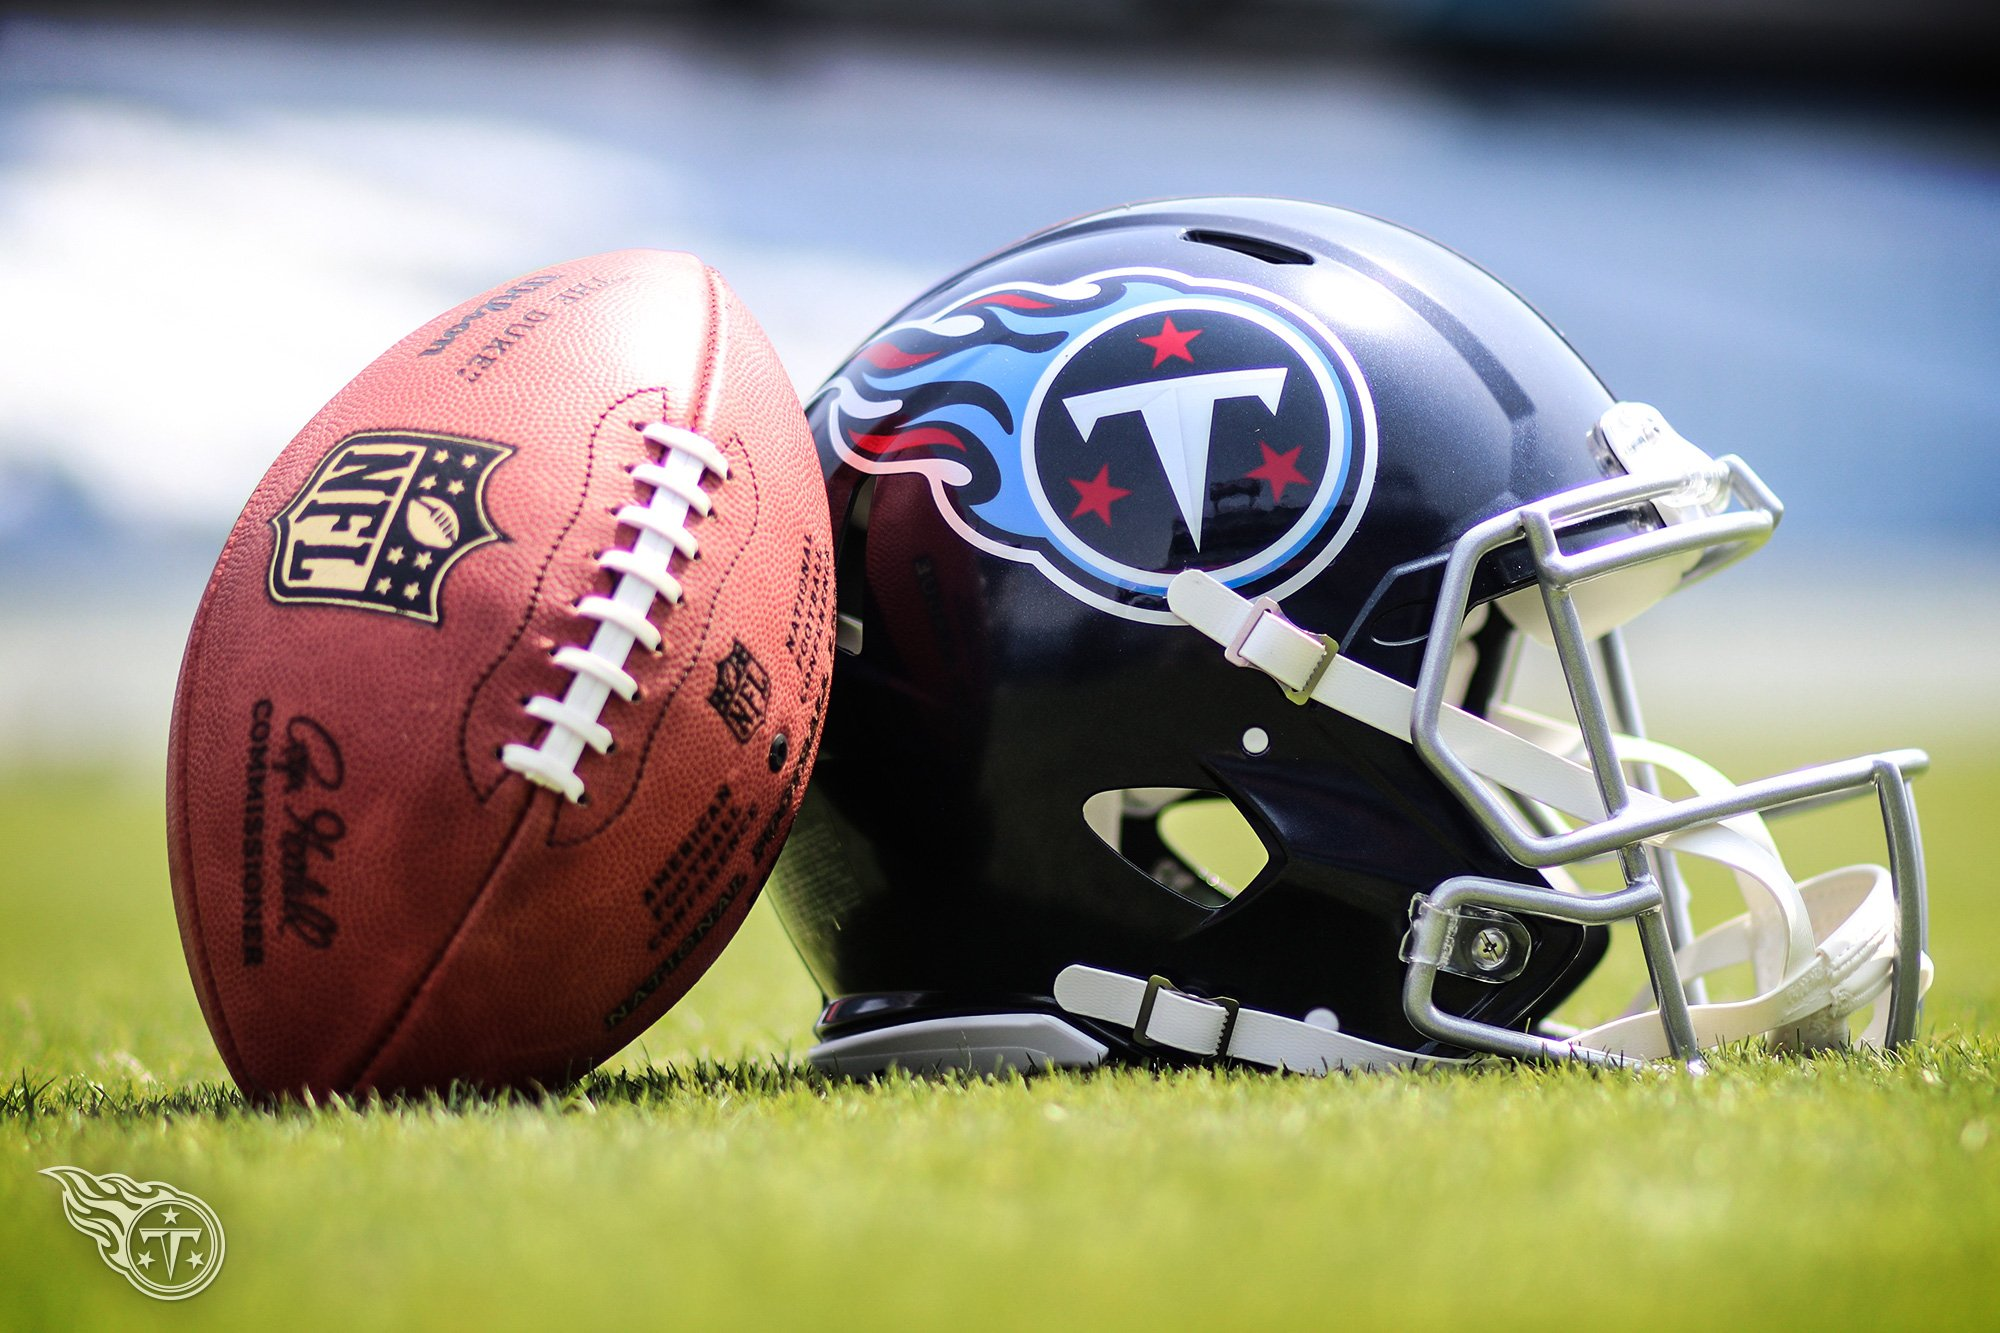 #Titans release three players following the NFL Draft   Roster Moves �� » https://t.co/sGrzLhBLzU https://t.co/vZnPp6WTWC